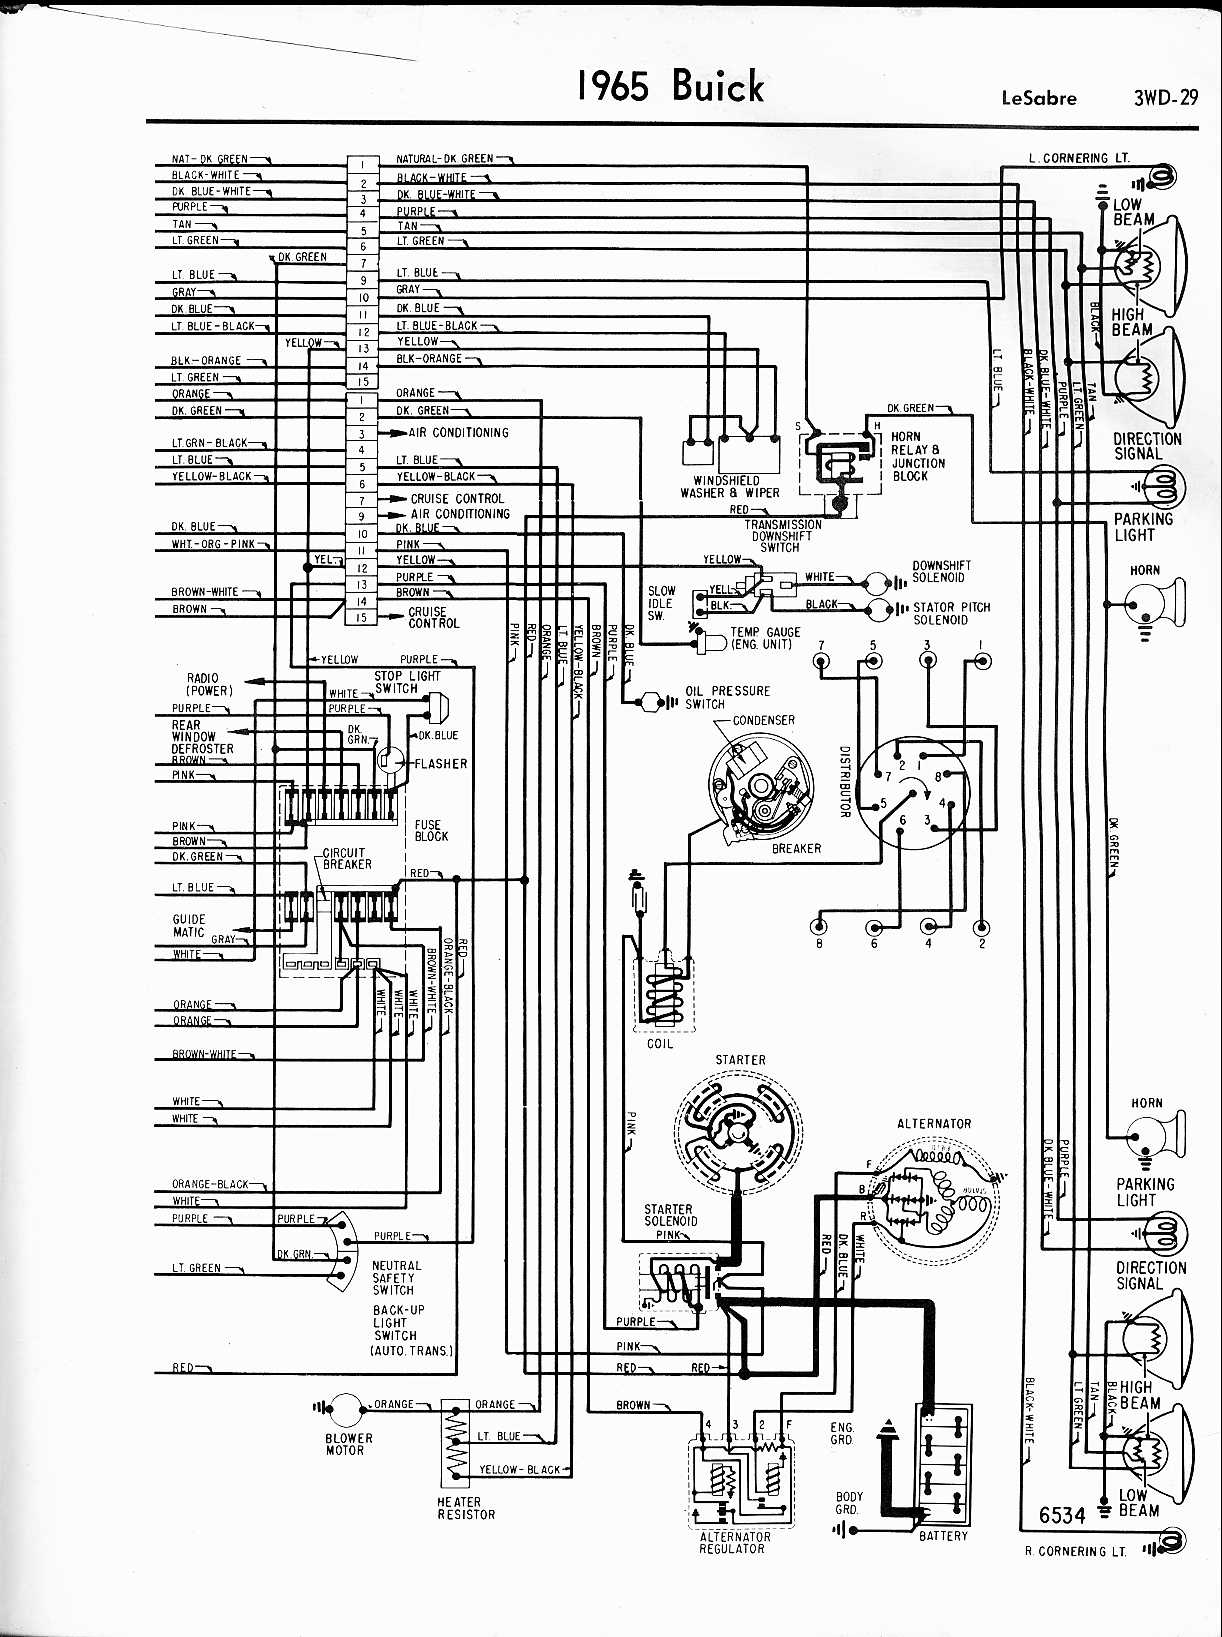 1960 Buick Lesabre Wiring Diagram The Portal And Forum Of Diagrams Additionally For Bulldog Remote Start 1957 1965 Rh Oldcarmanualproject Com 2000 1996